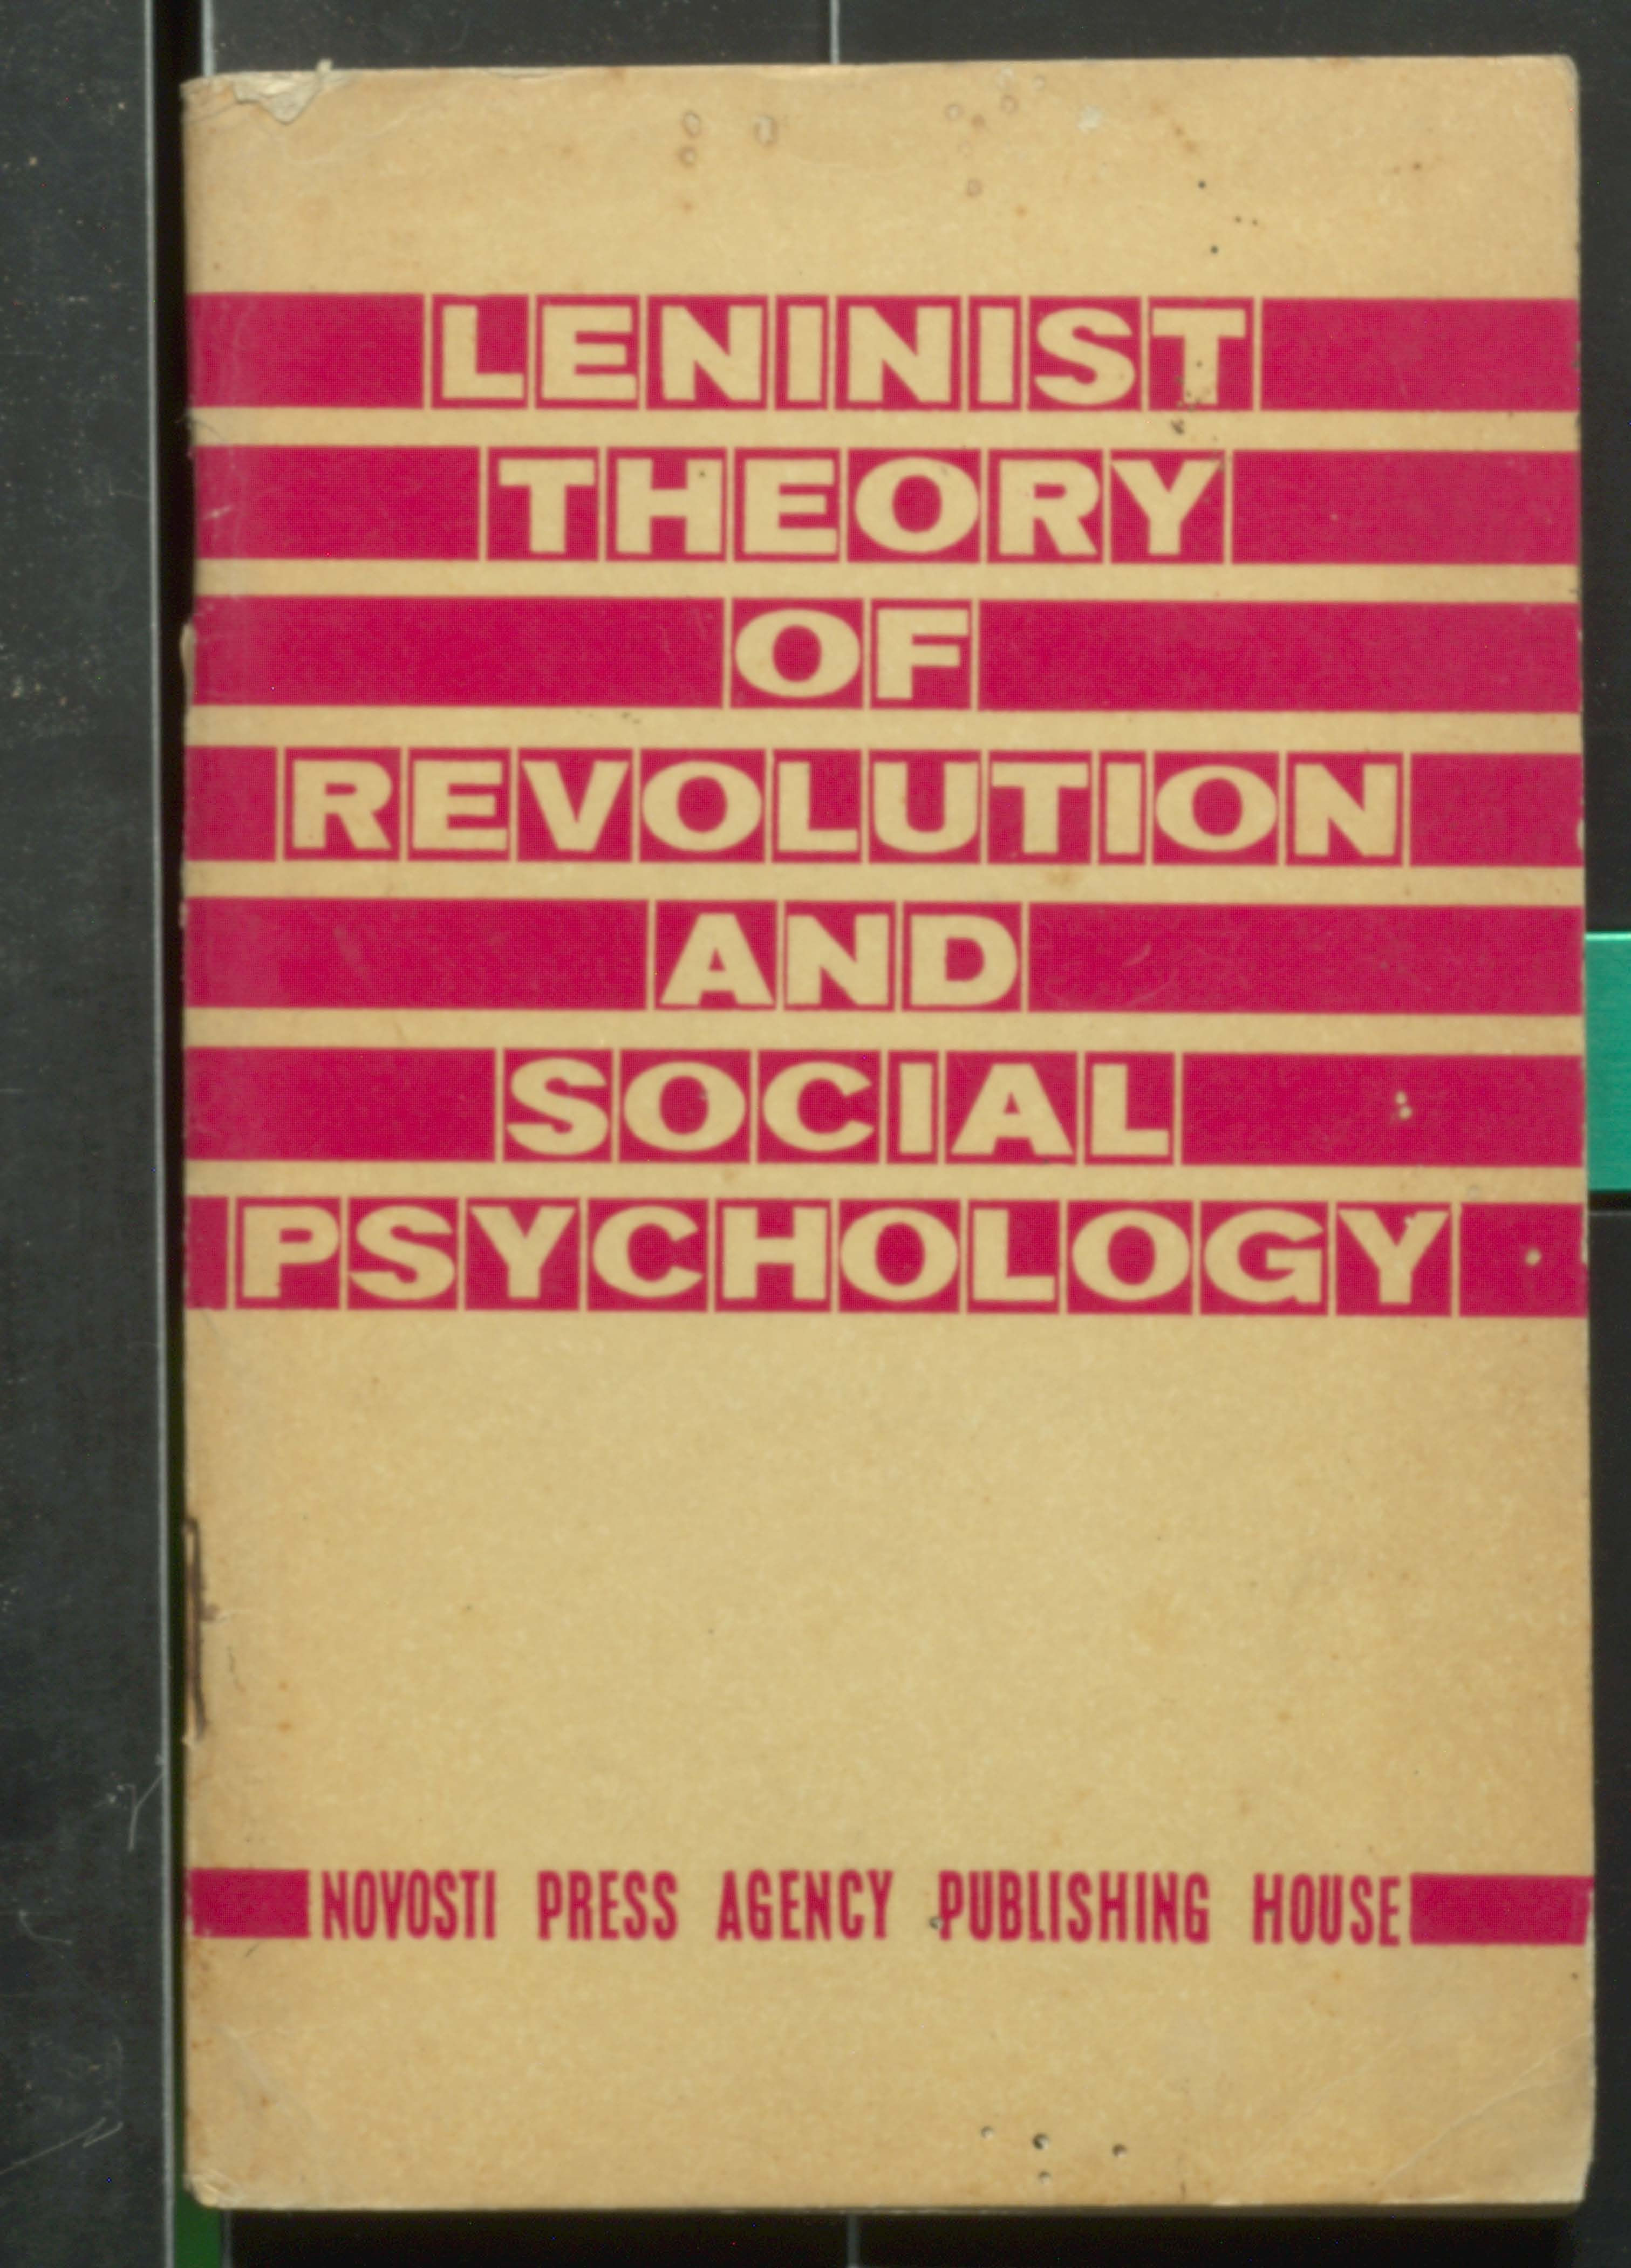 Leninist theory of Revolution and social psychology